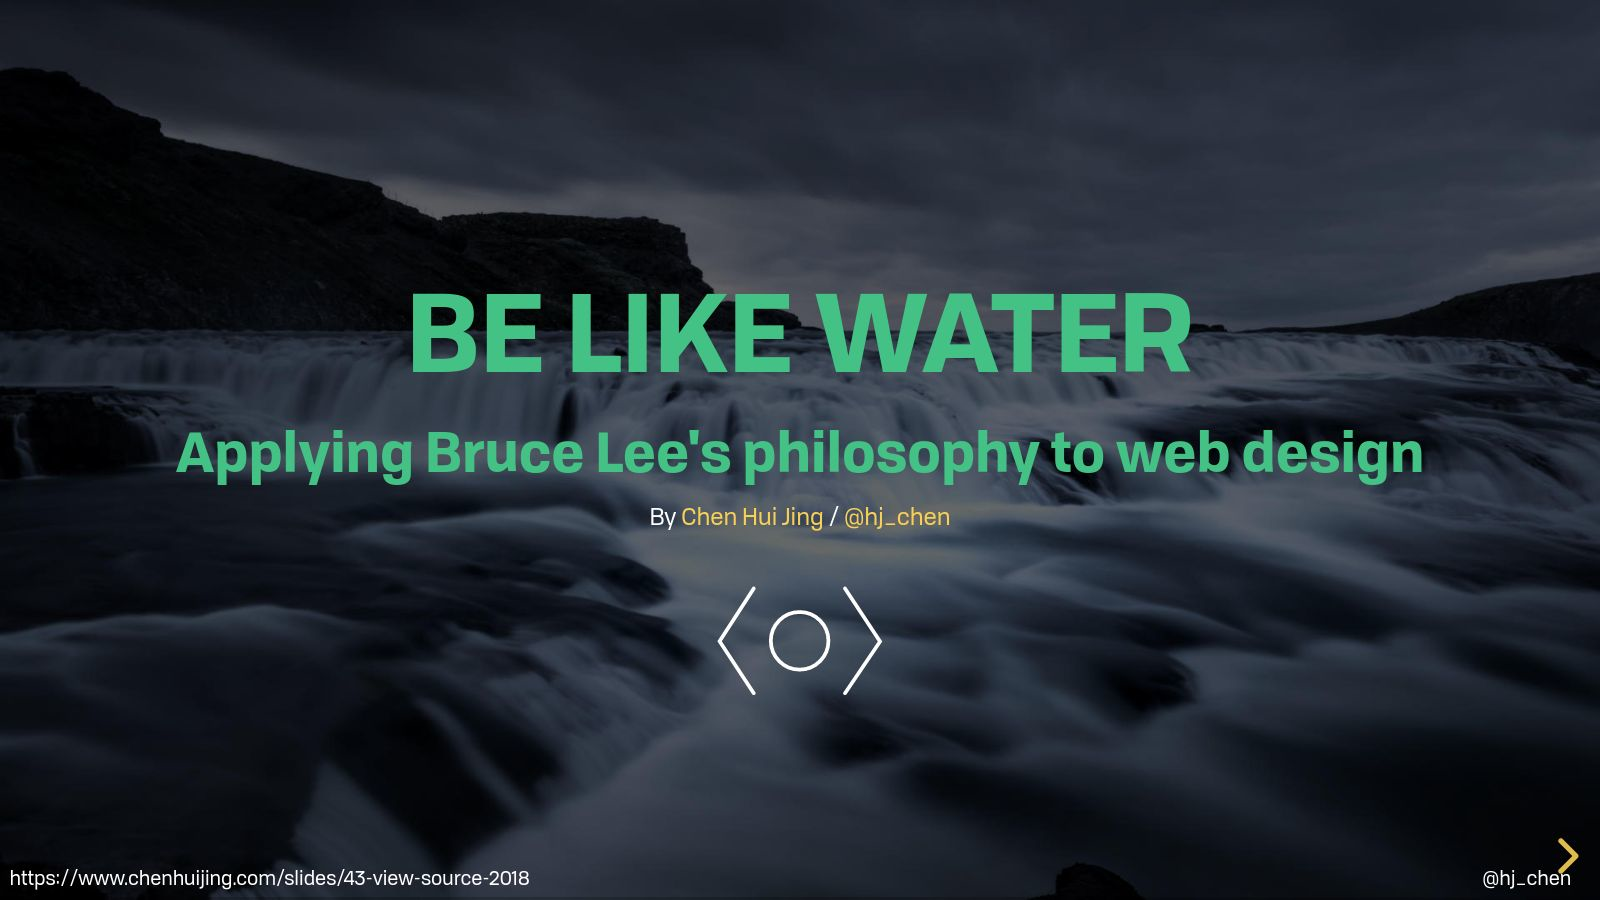 Be like water: applying Bruce Lee's philosophy to web design